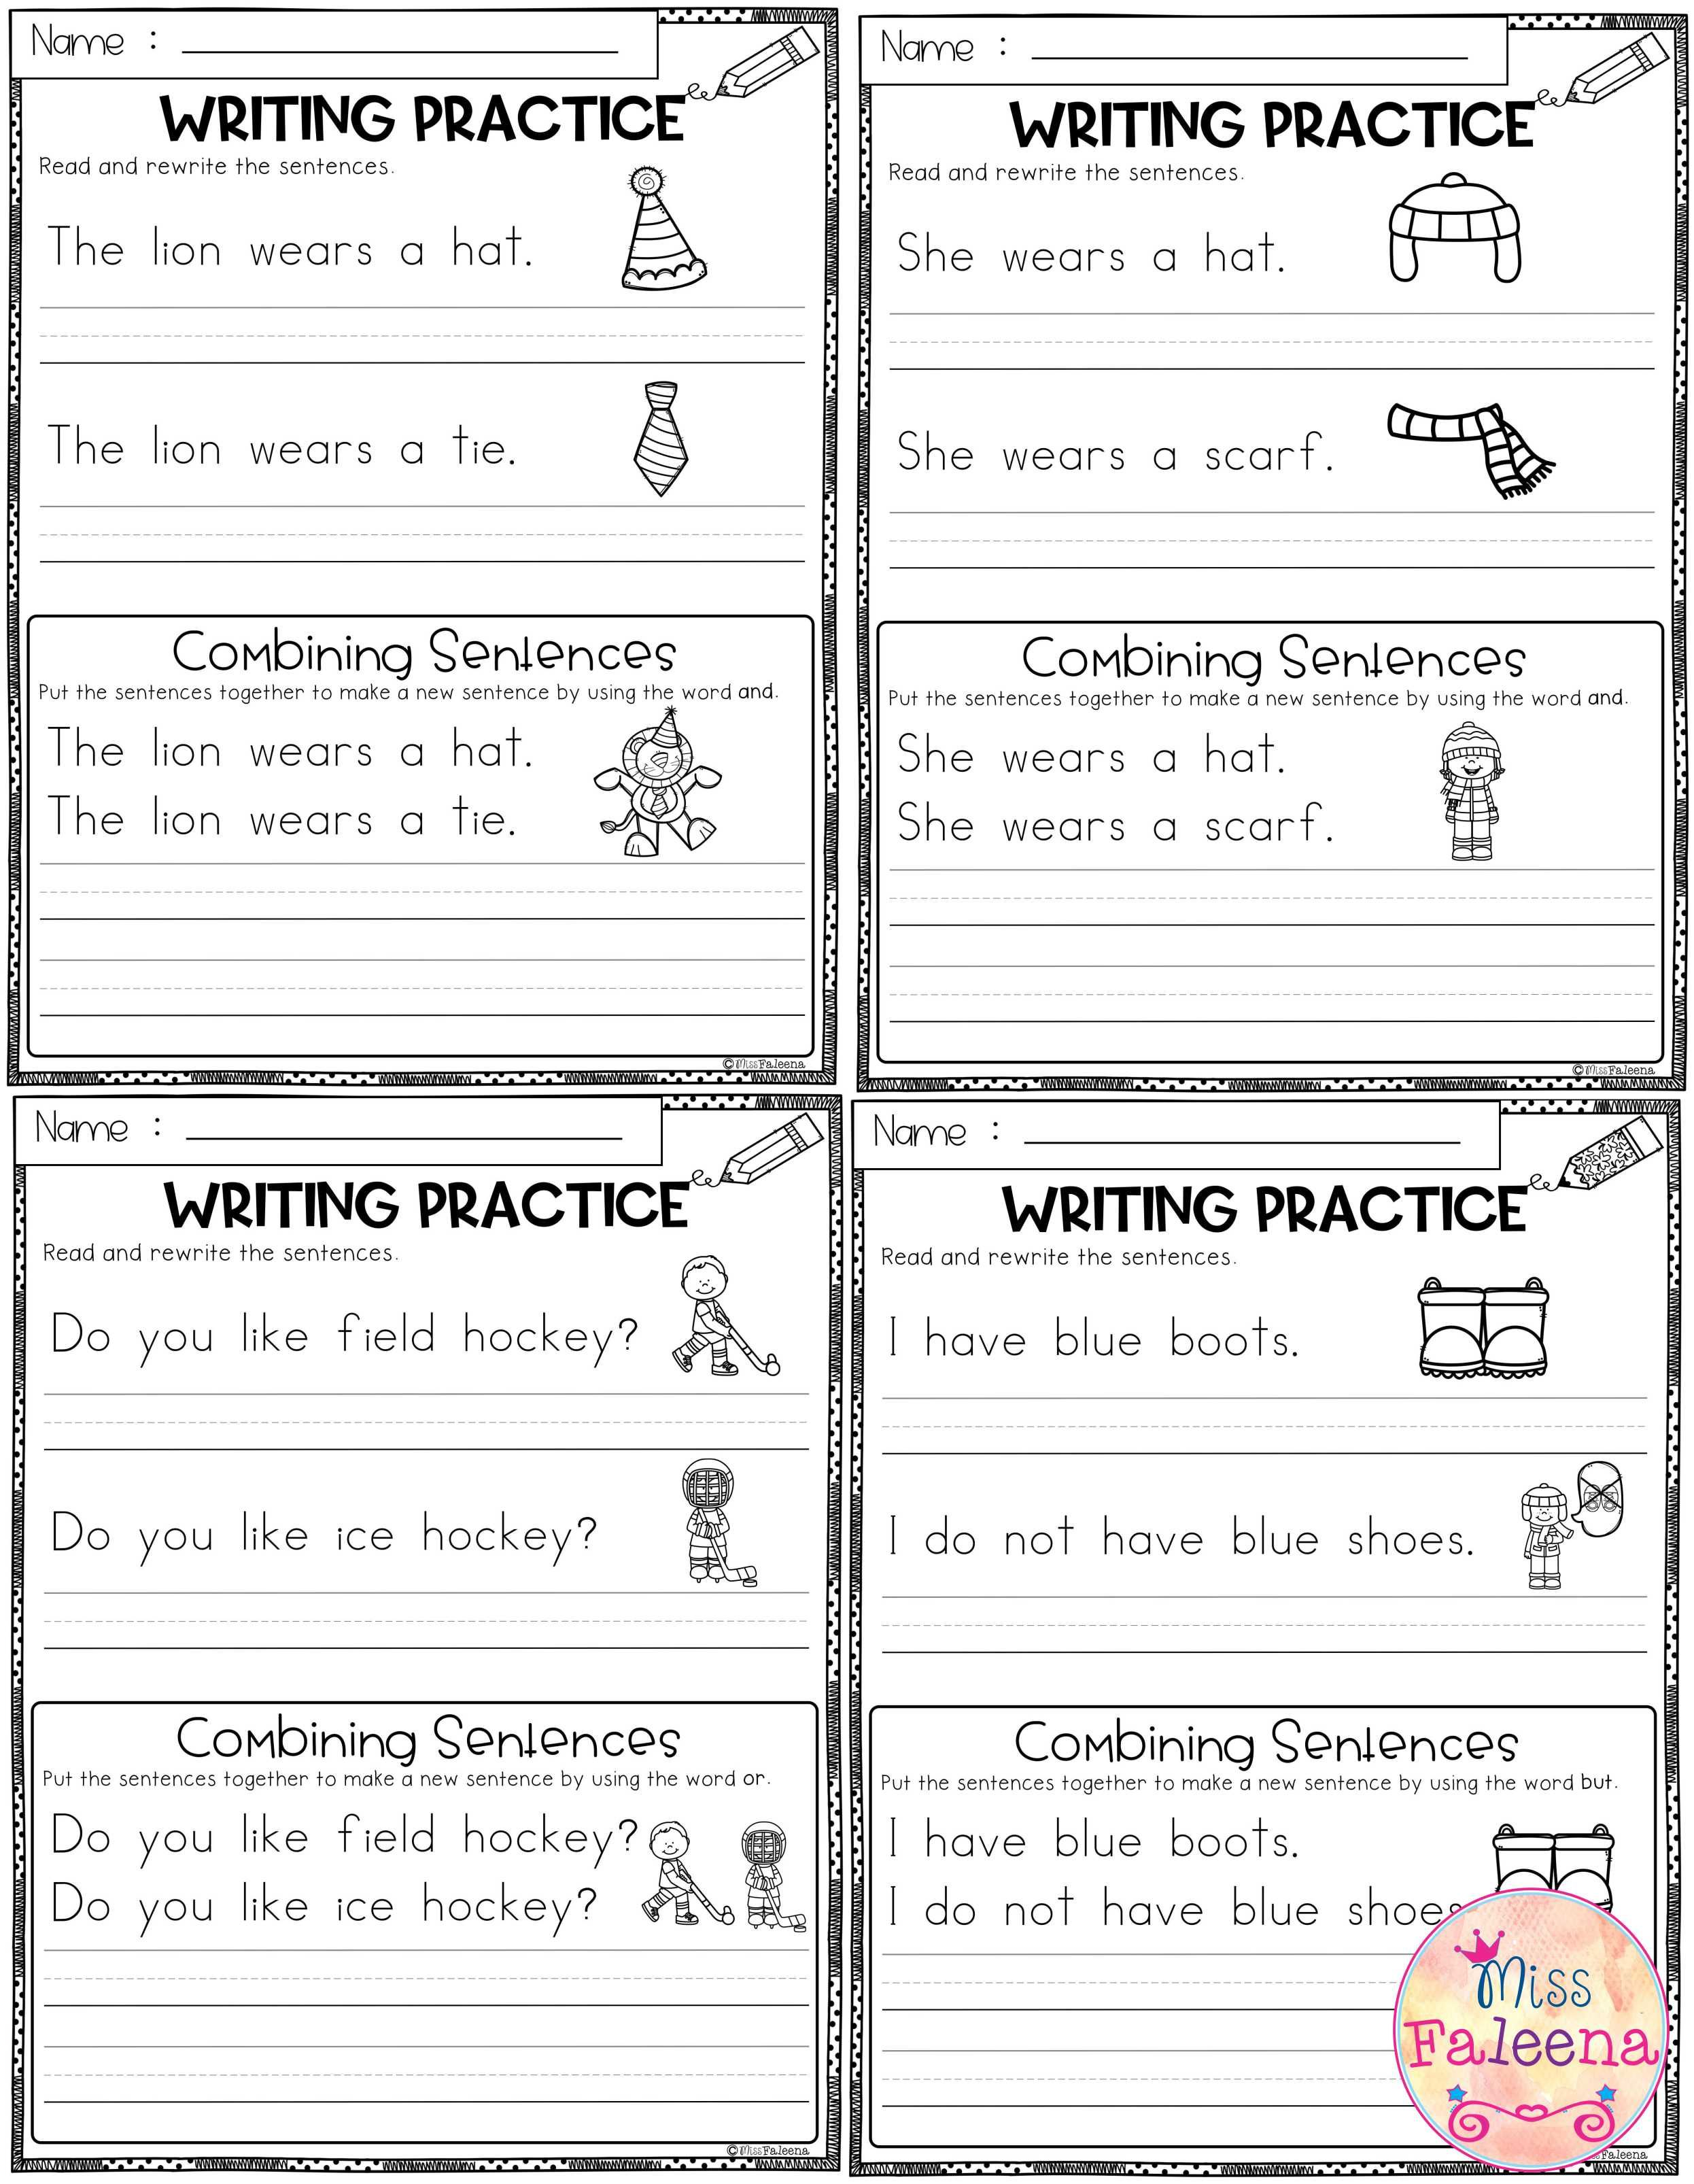 January Writing Practice Combining Sentences Is